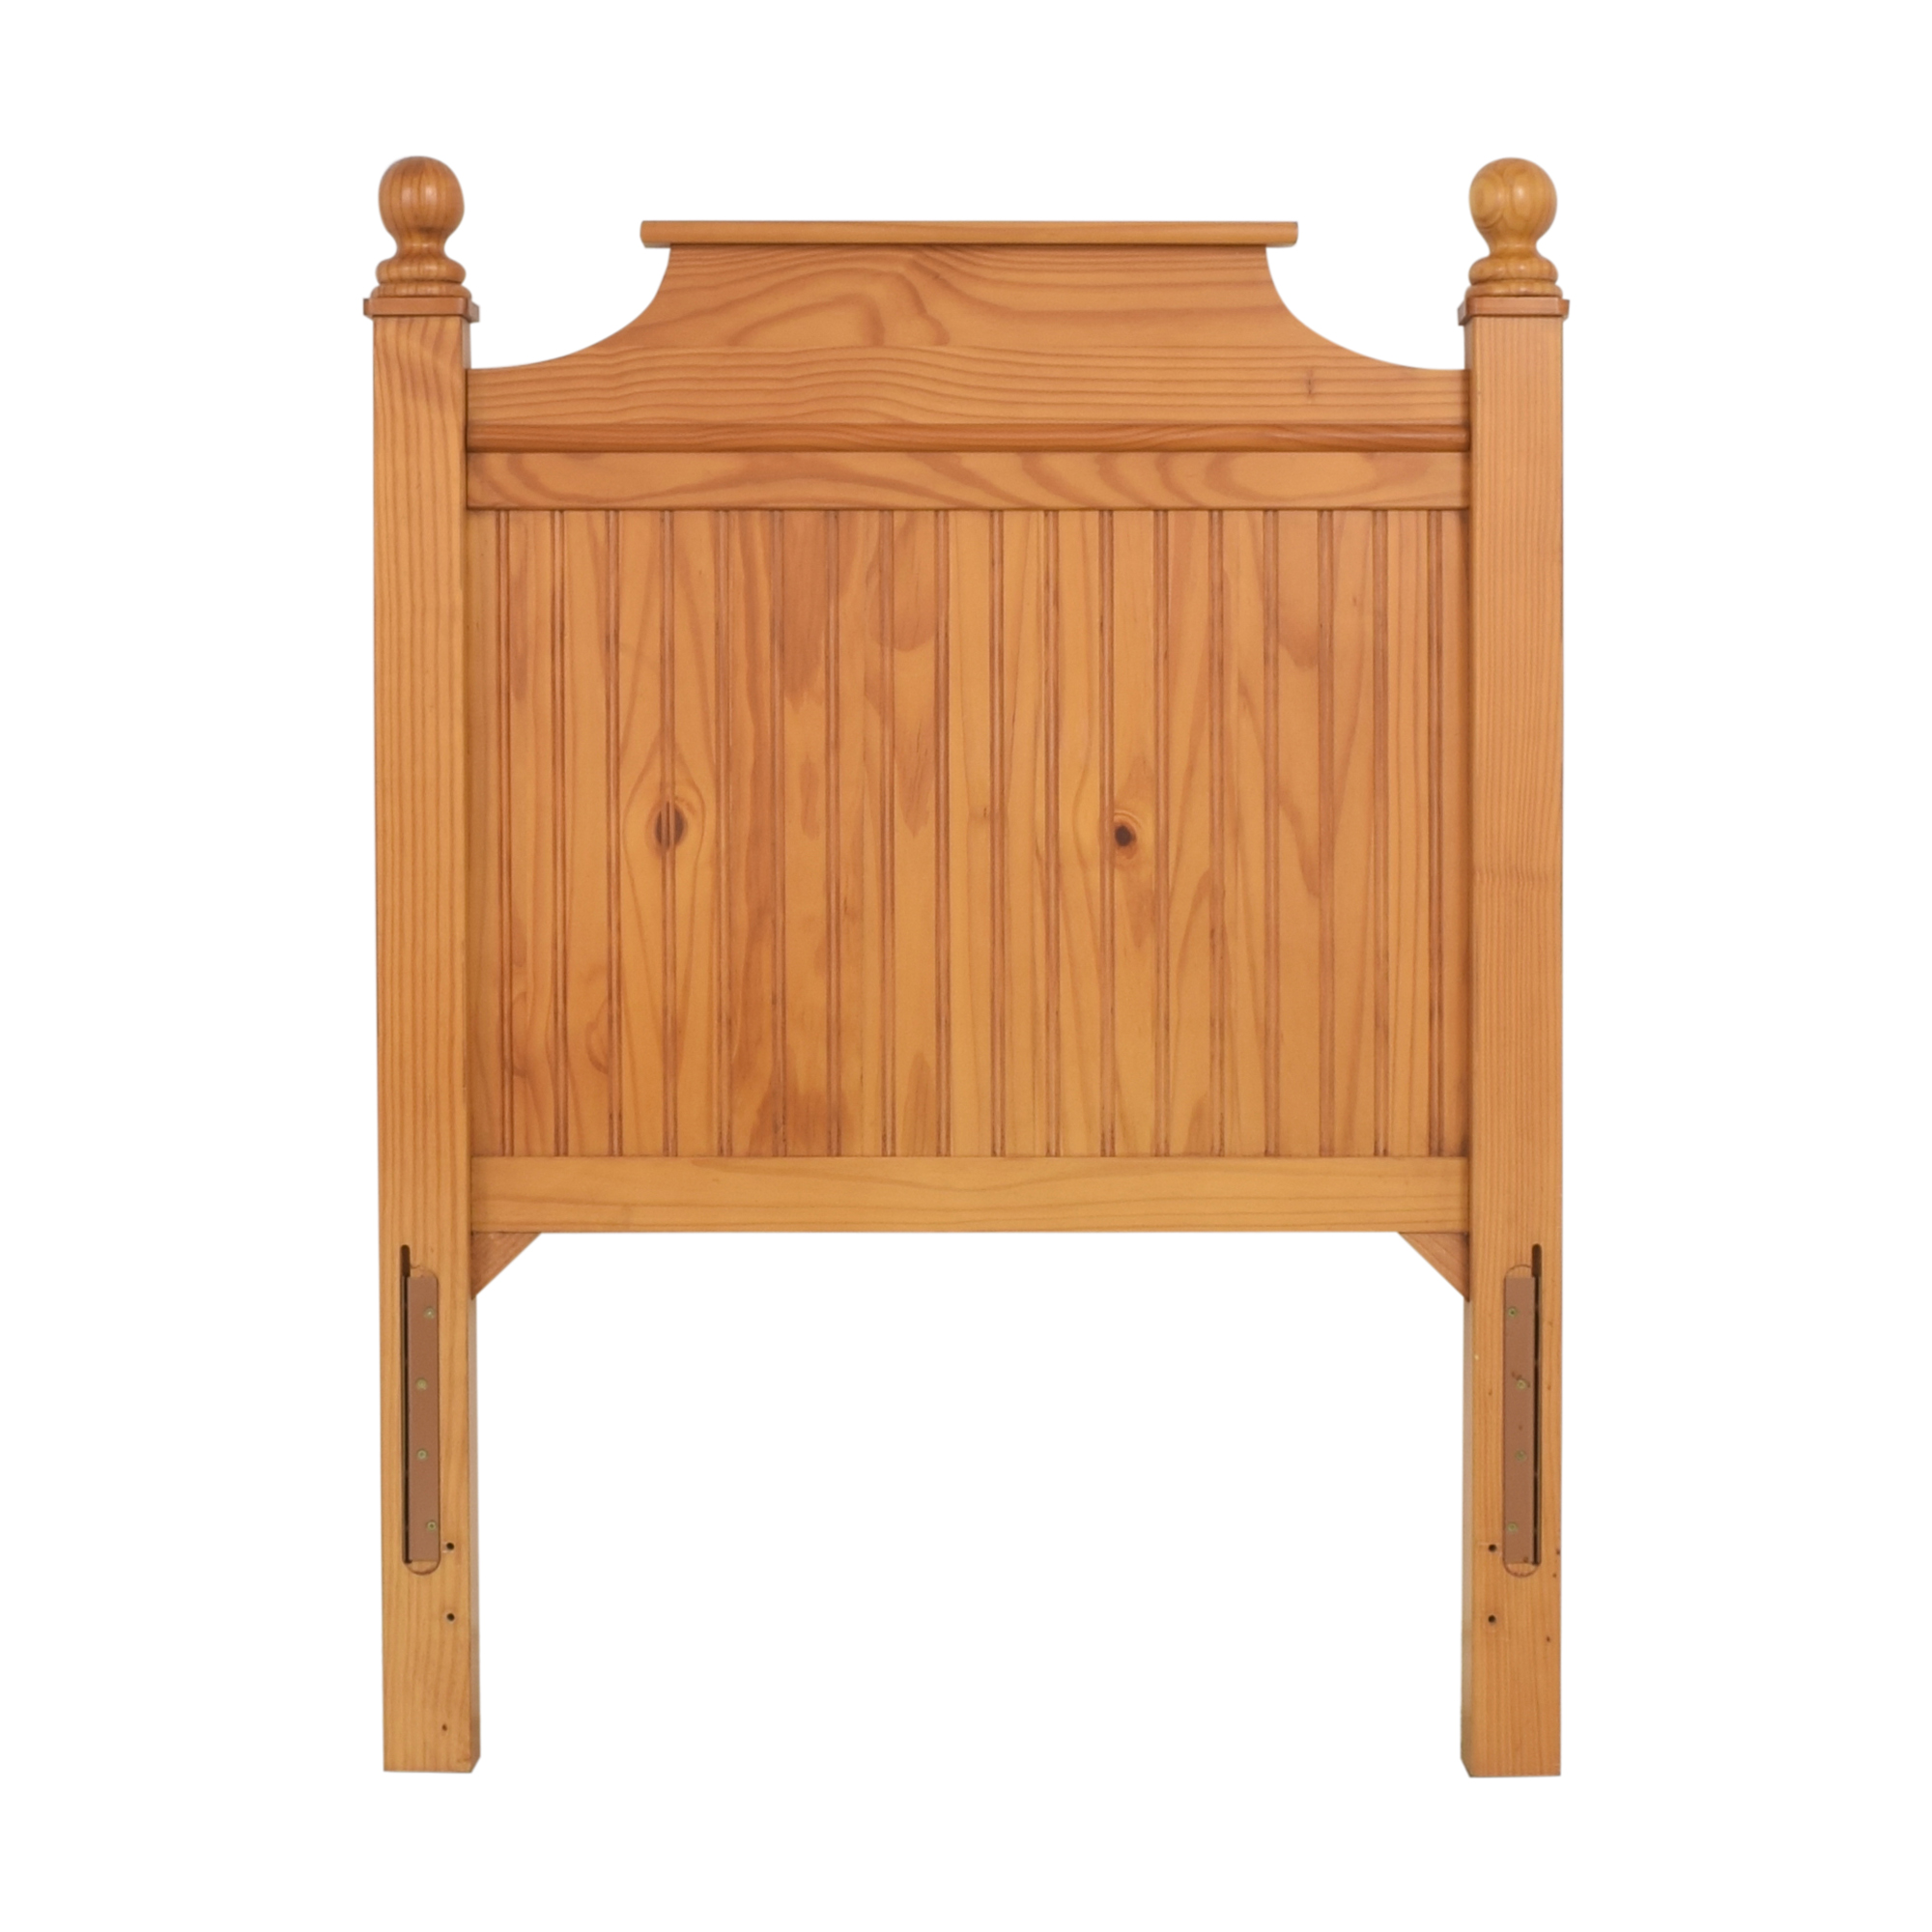 Stanley Furniture Stanley Furniture Low Post Twin Headboard discount